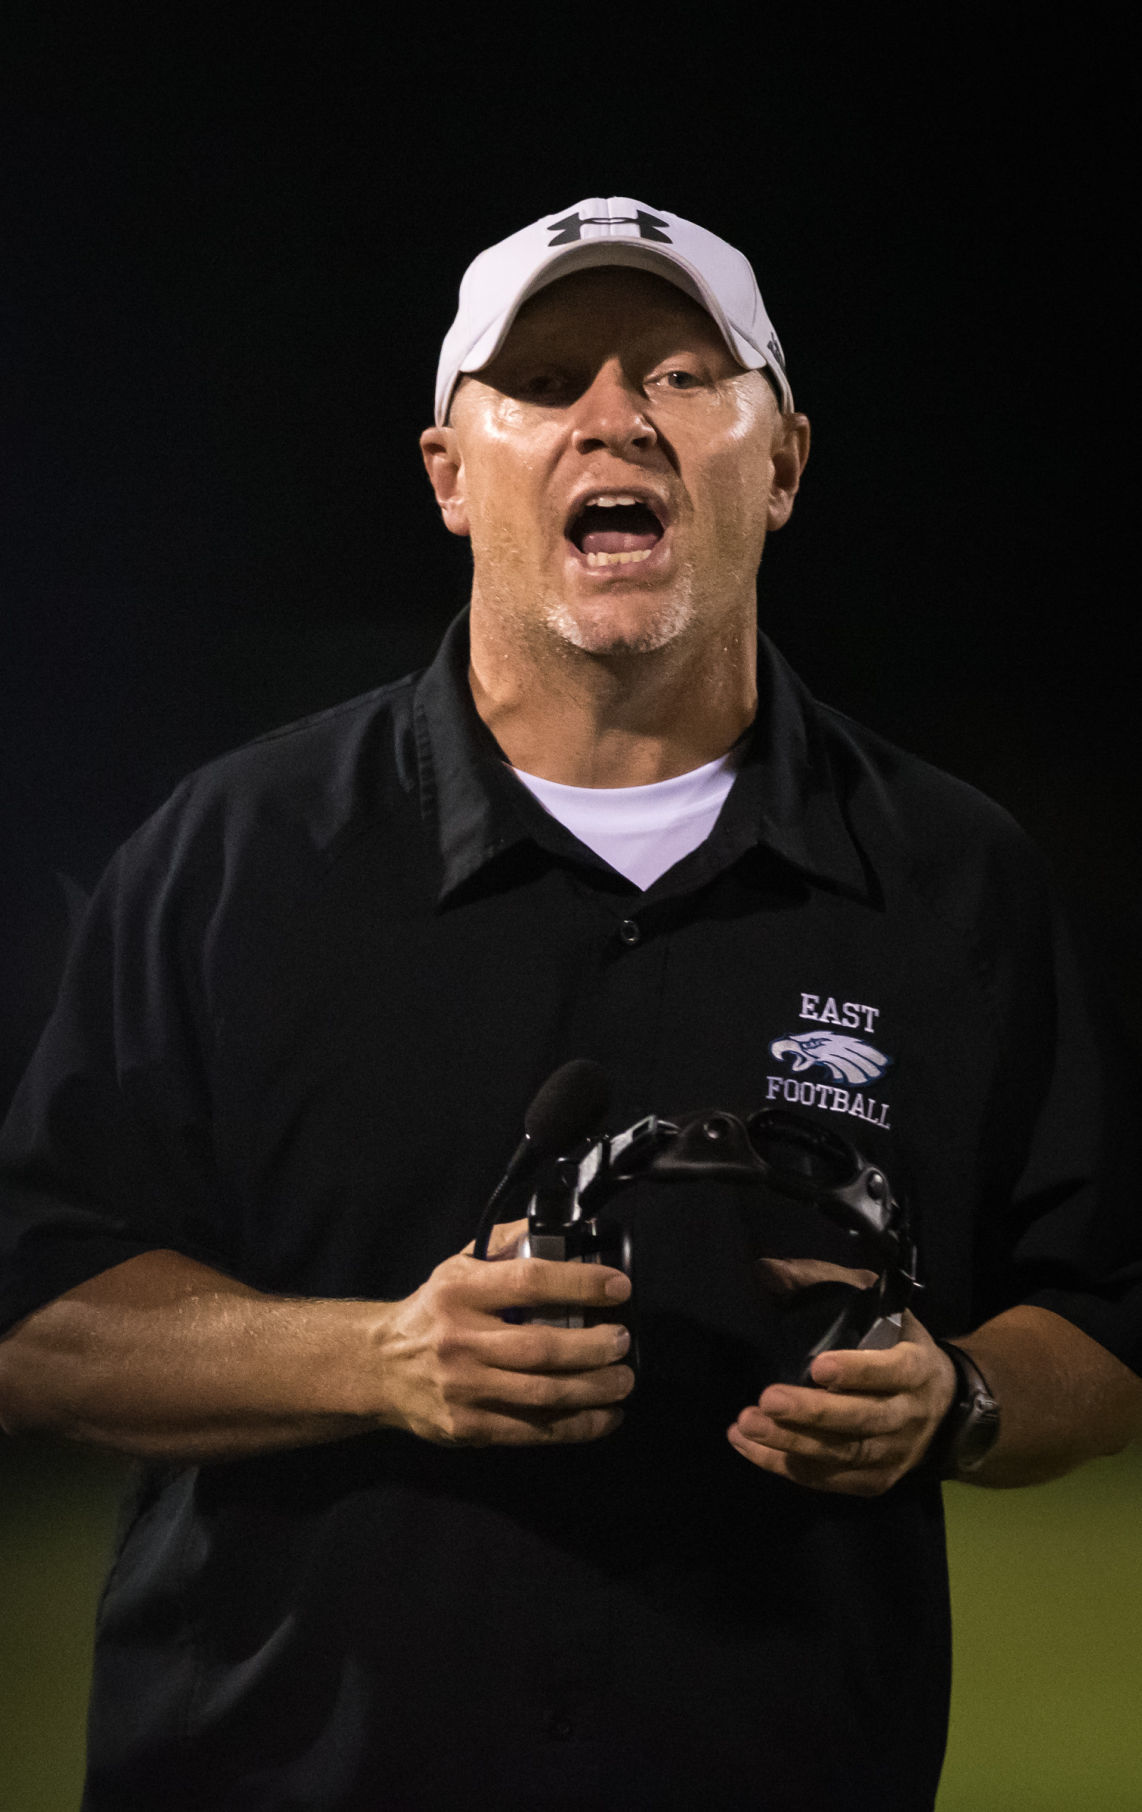 f94723142 East Forsyth s Willert named one of the 10 coaches of the week by Carolina  Panthers